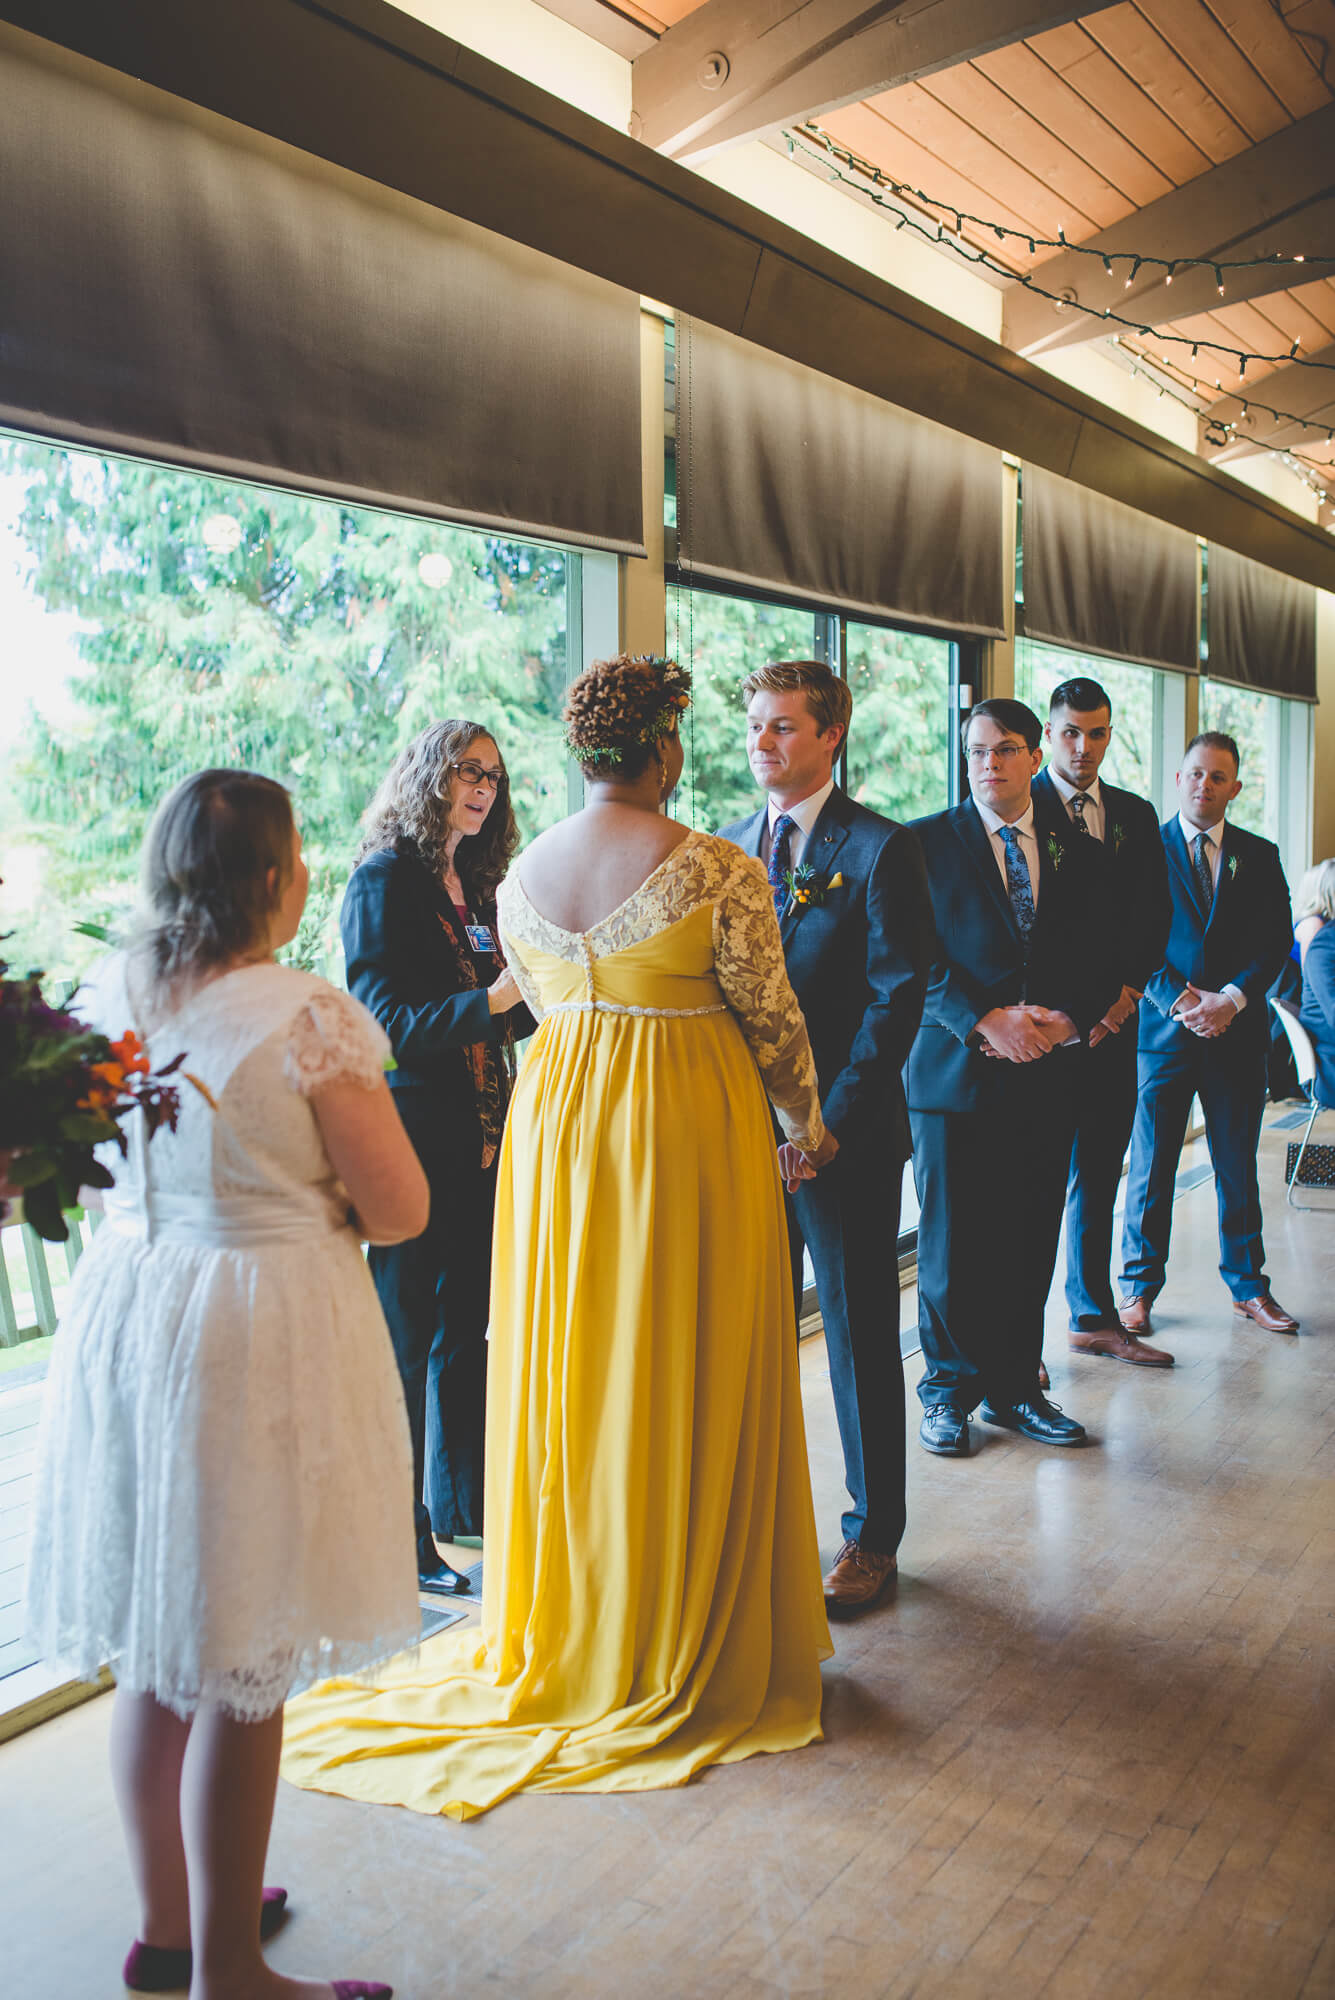 groom looking at bride in yellow flowing wedding dress with lace sleeves during wedding at Centennial Lodge in New Westminster